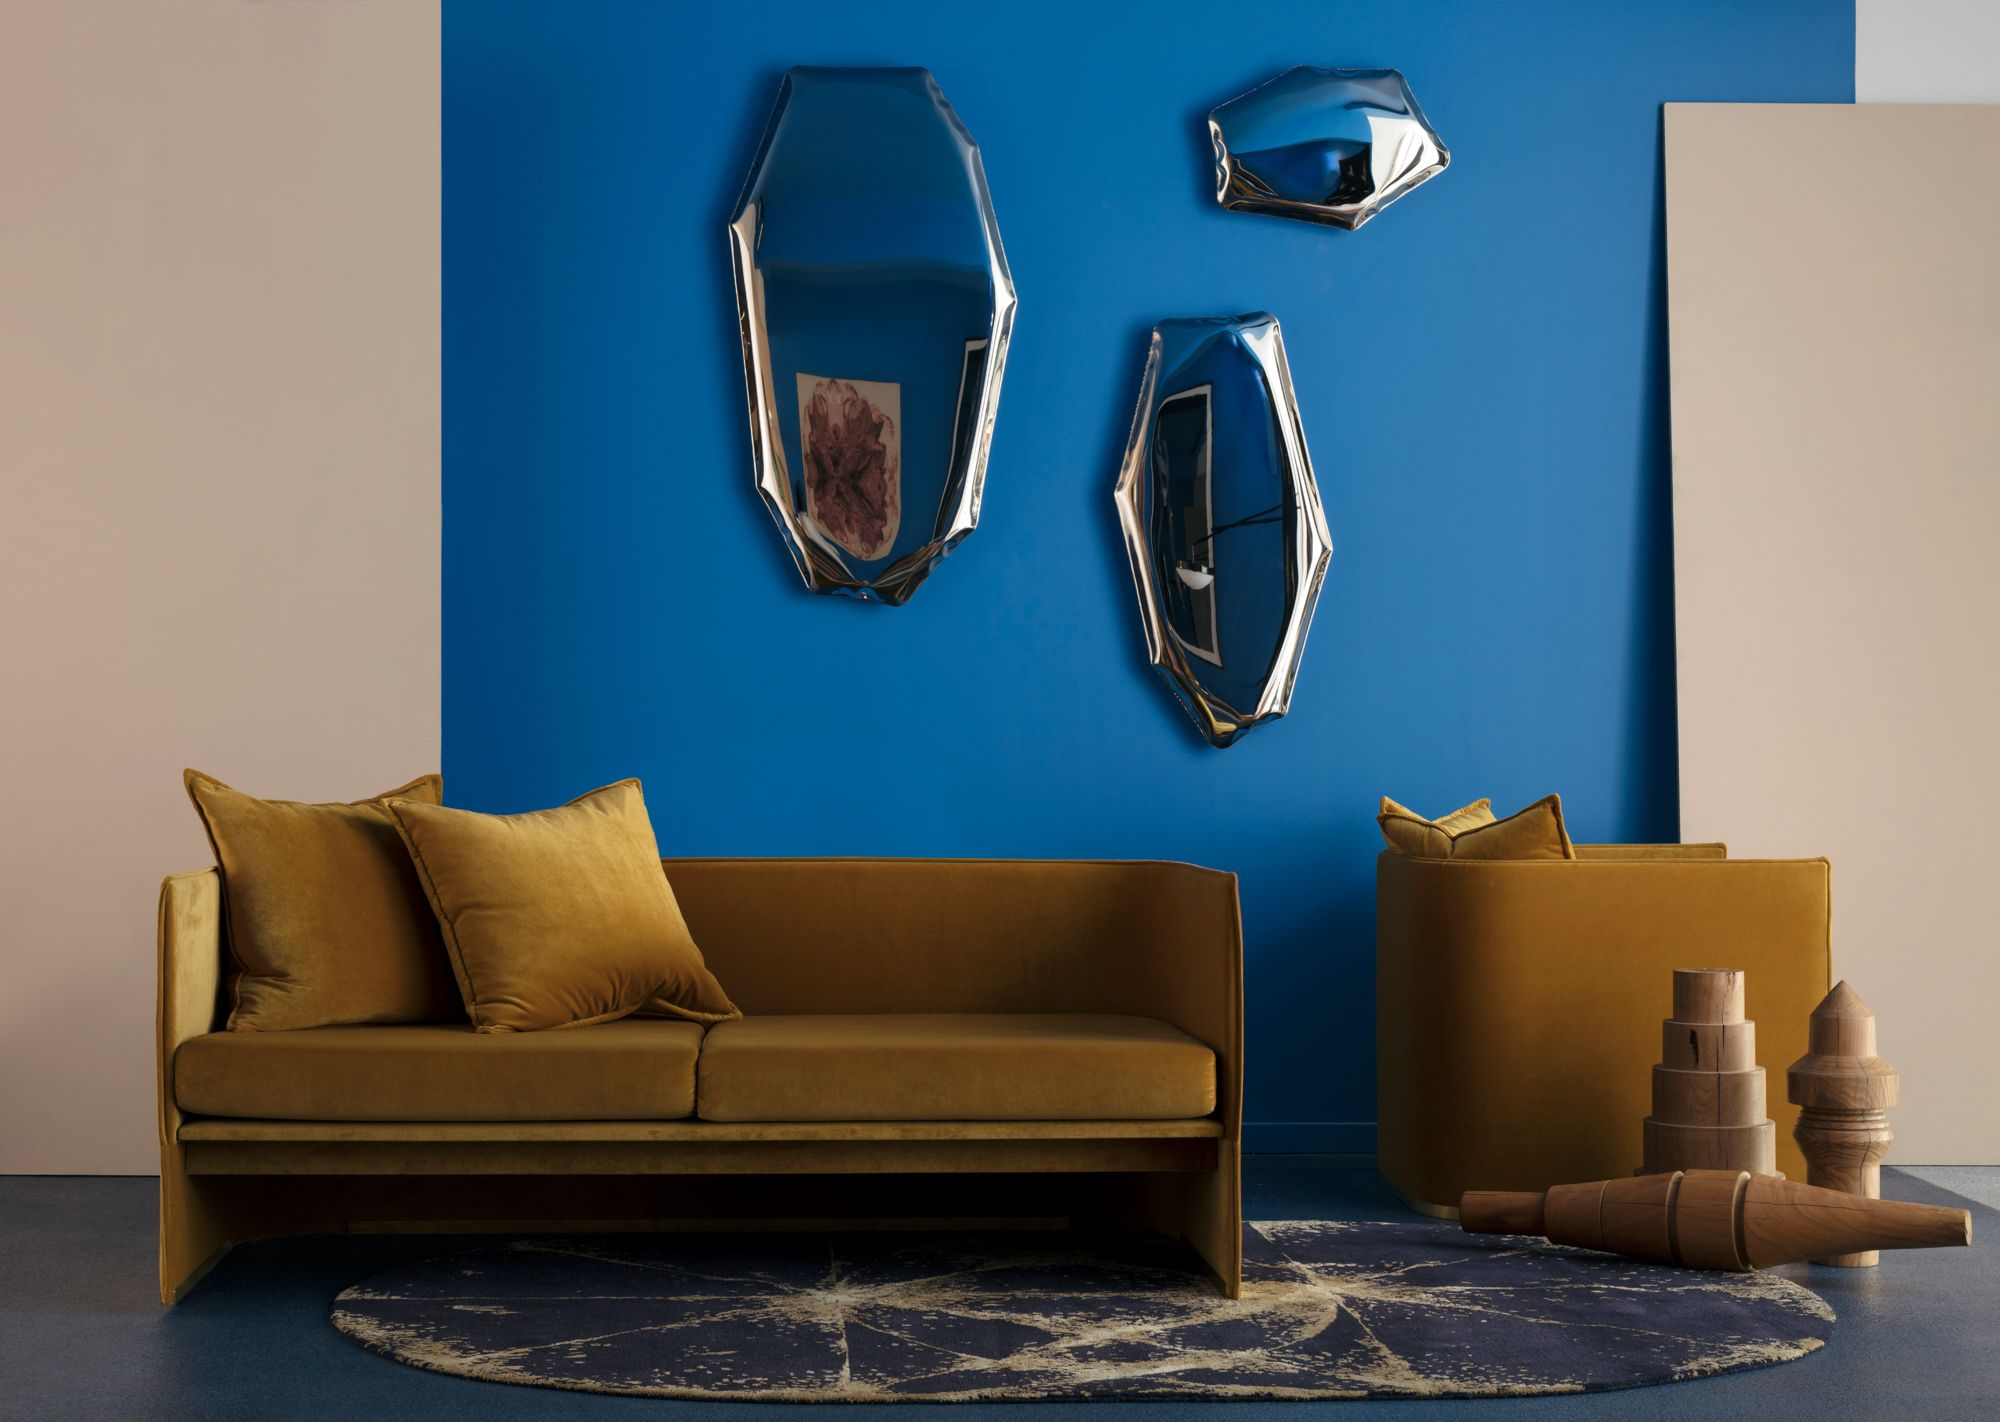 Abstract Mirrors Blue Walls Vintage Gold Couch Interior Styling By Emma Elizabeth Furniture Gold Couch Furniture Design